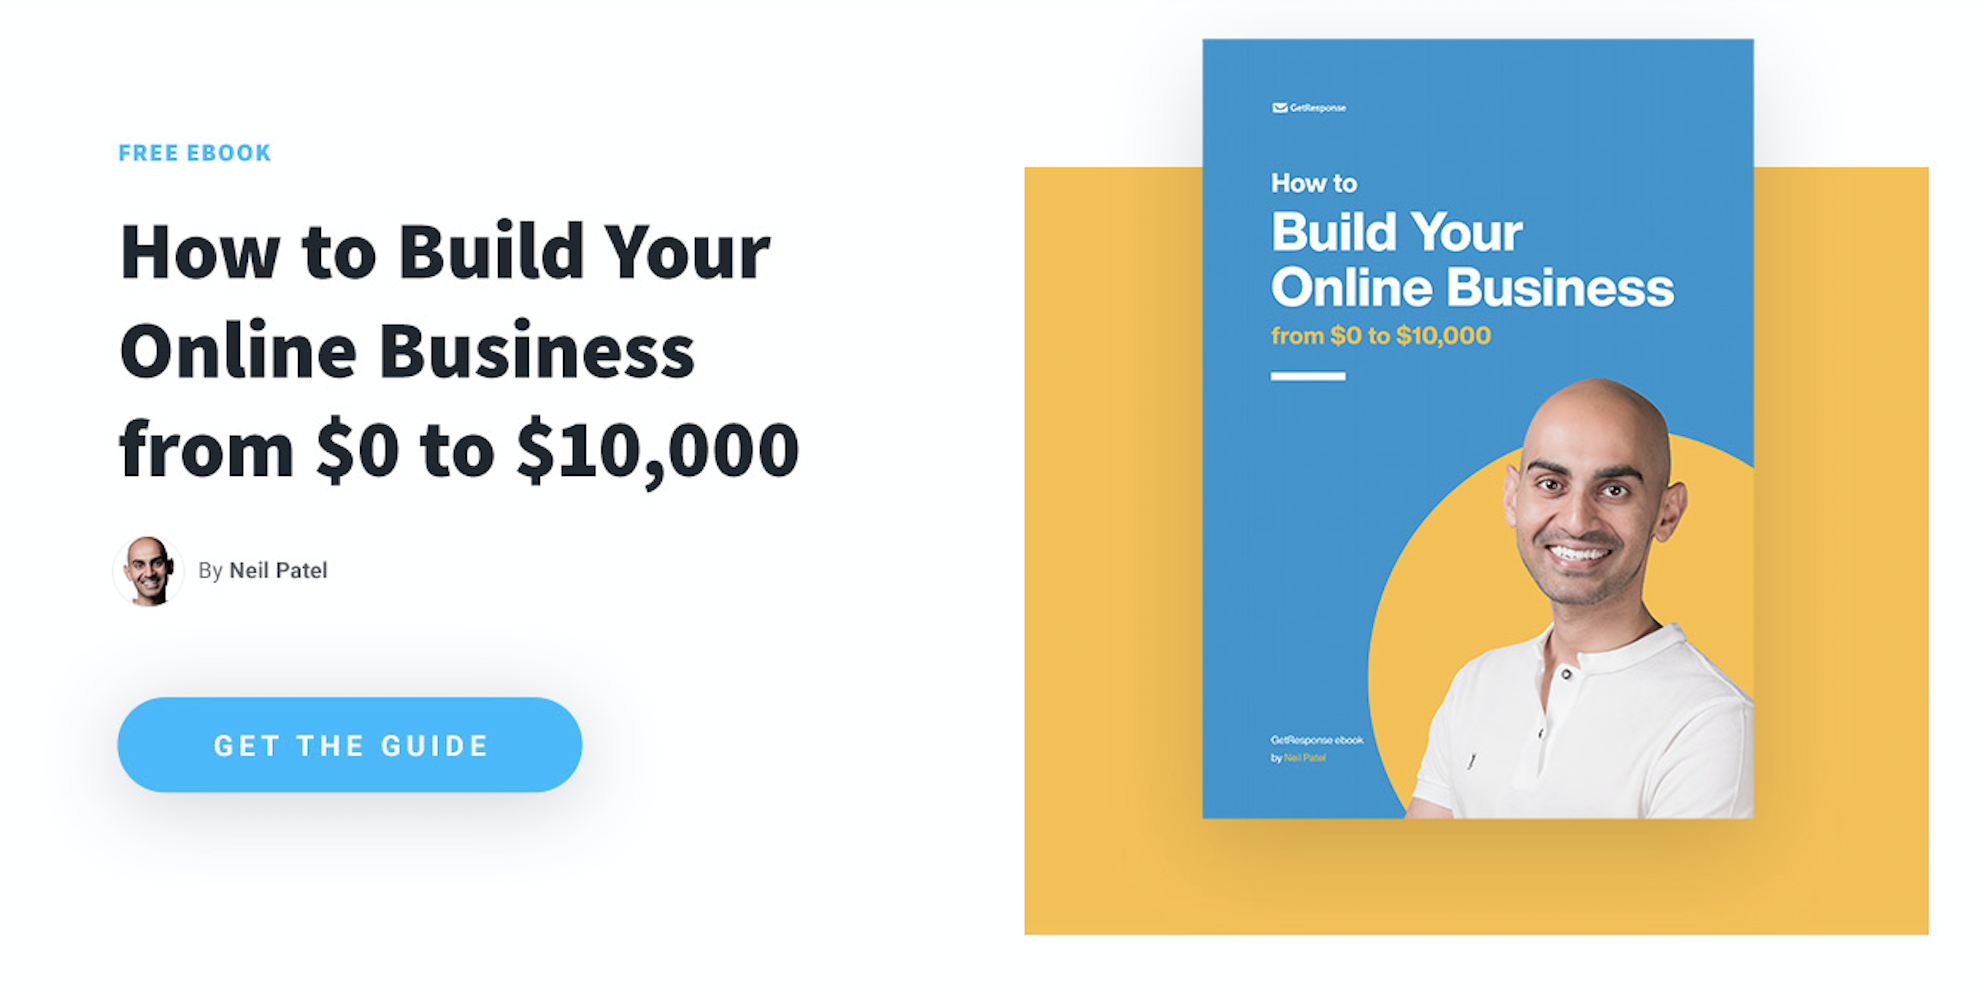 How to build an online business from $0 to $10,000 free ebook.